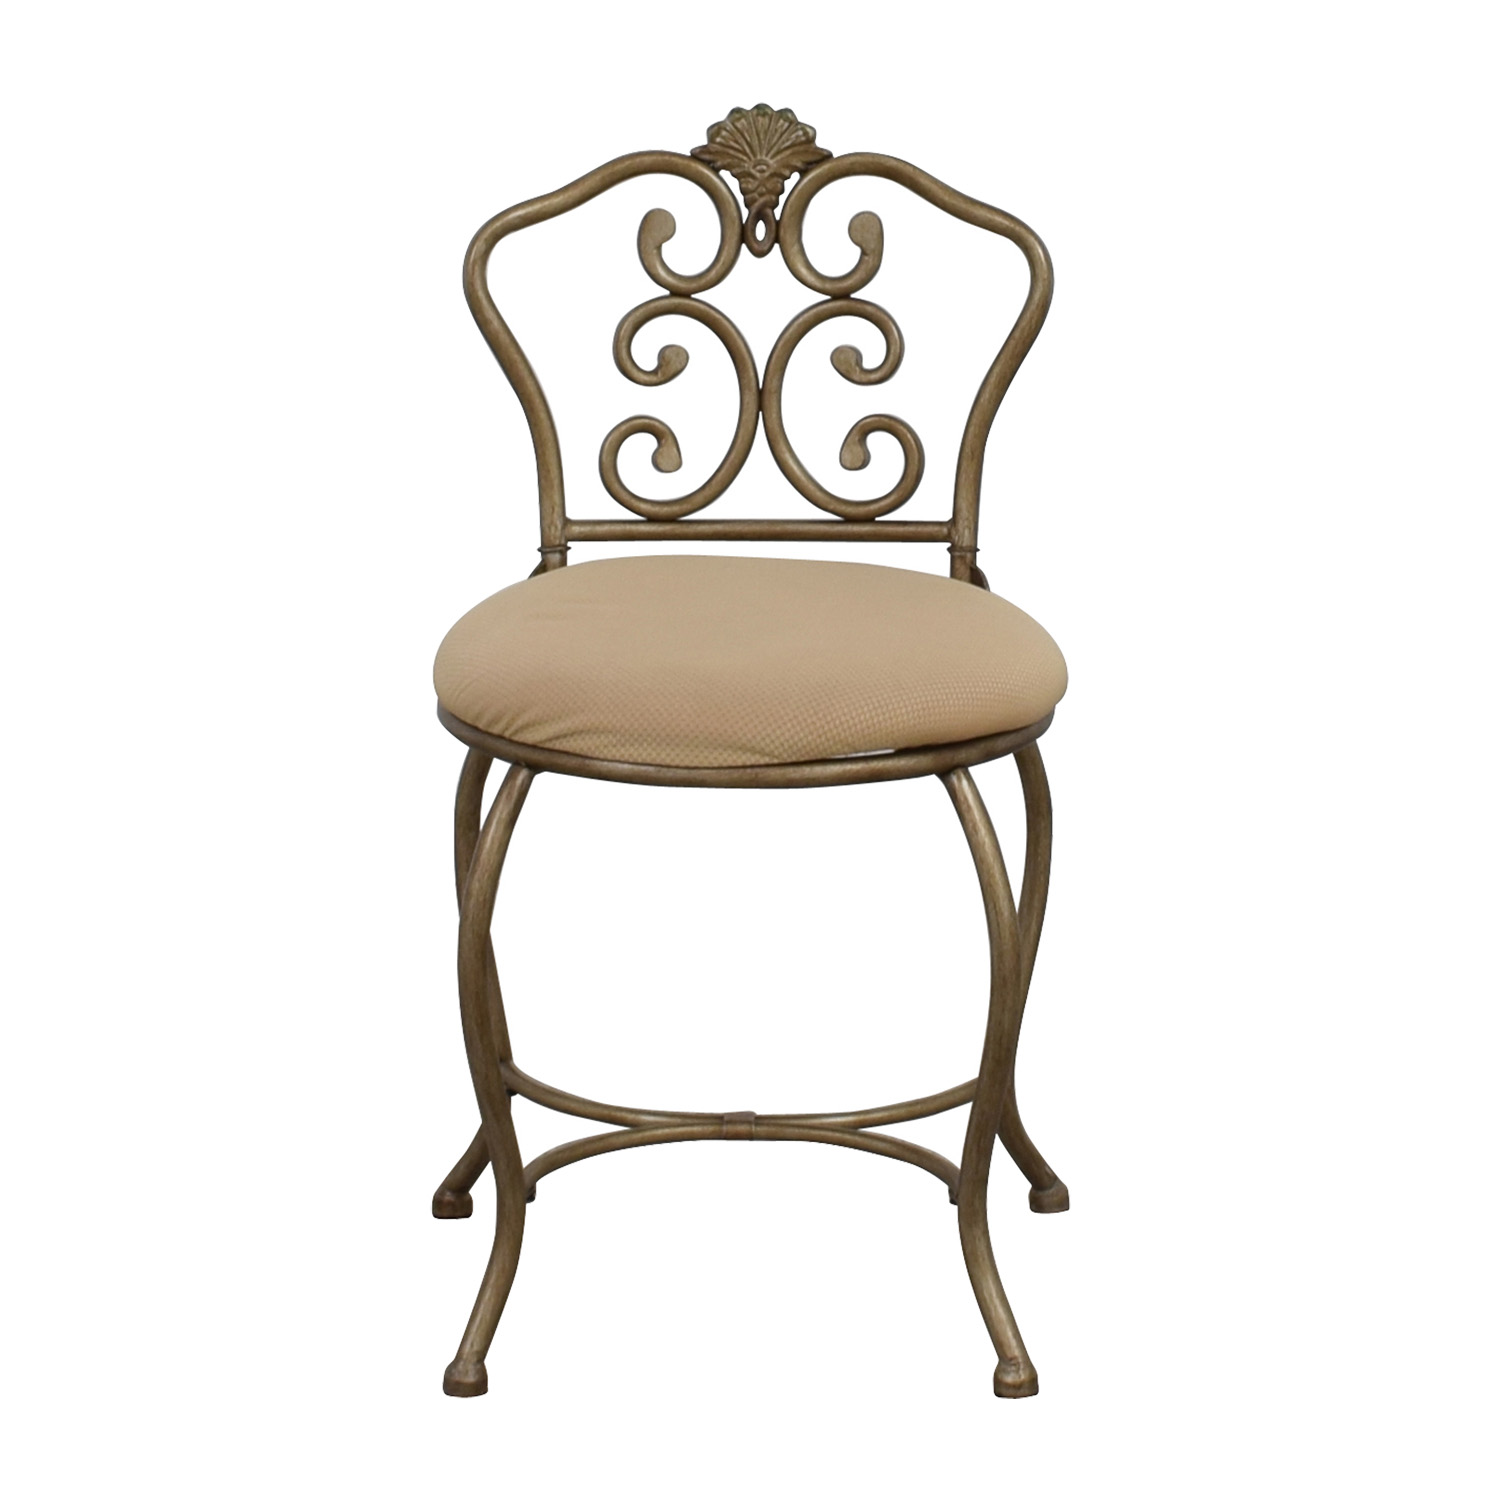 Tan Seat with Silver Frame Chair